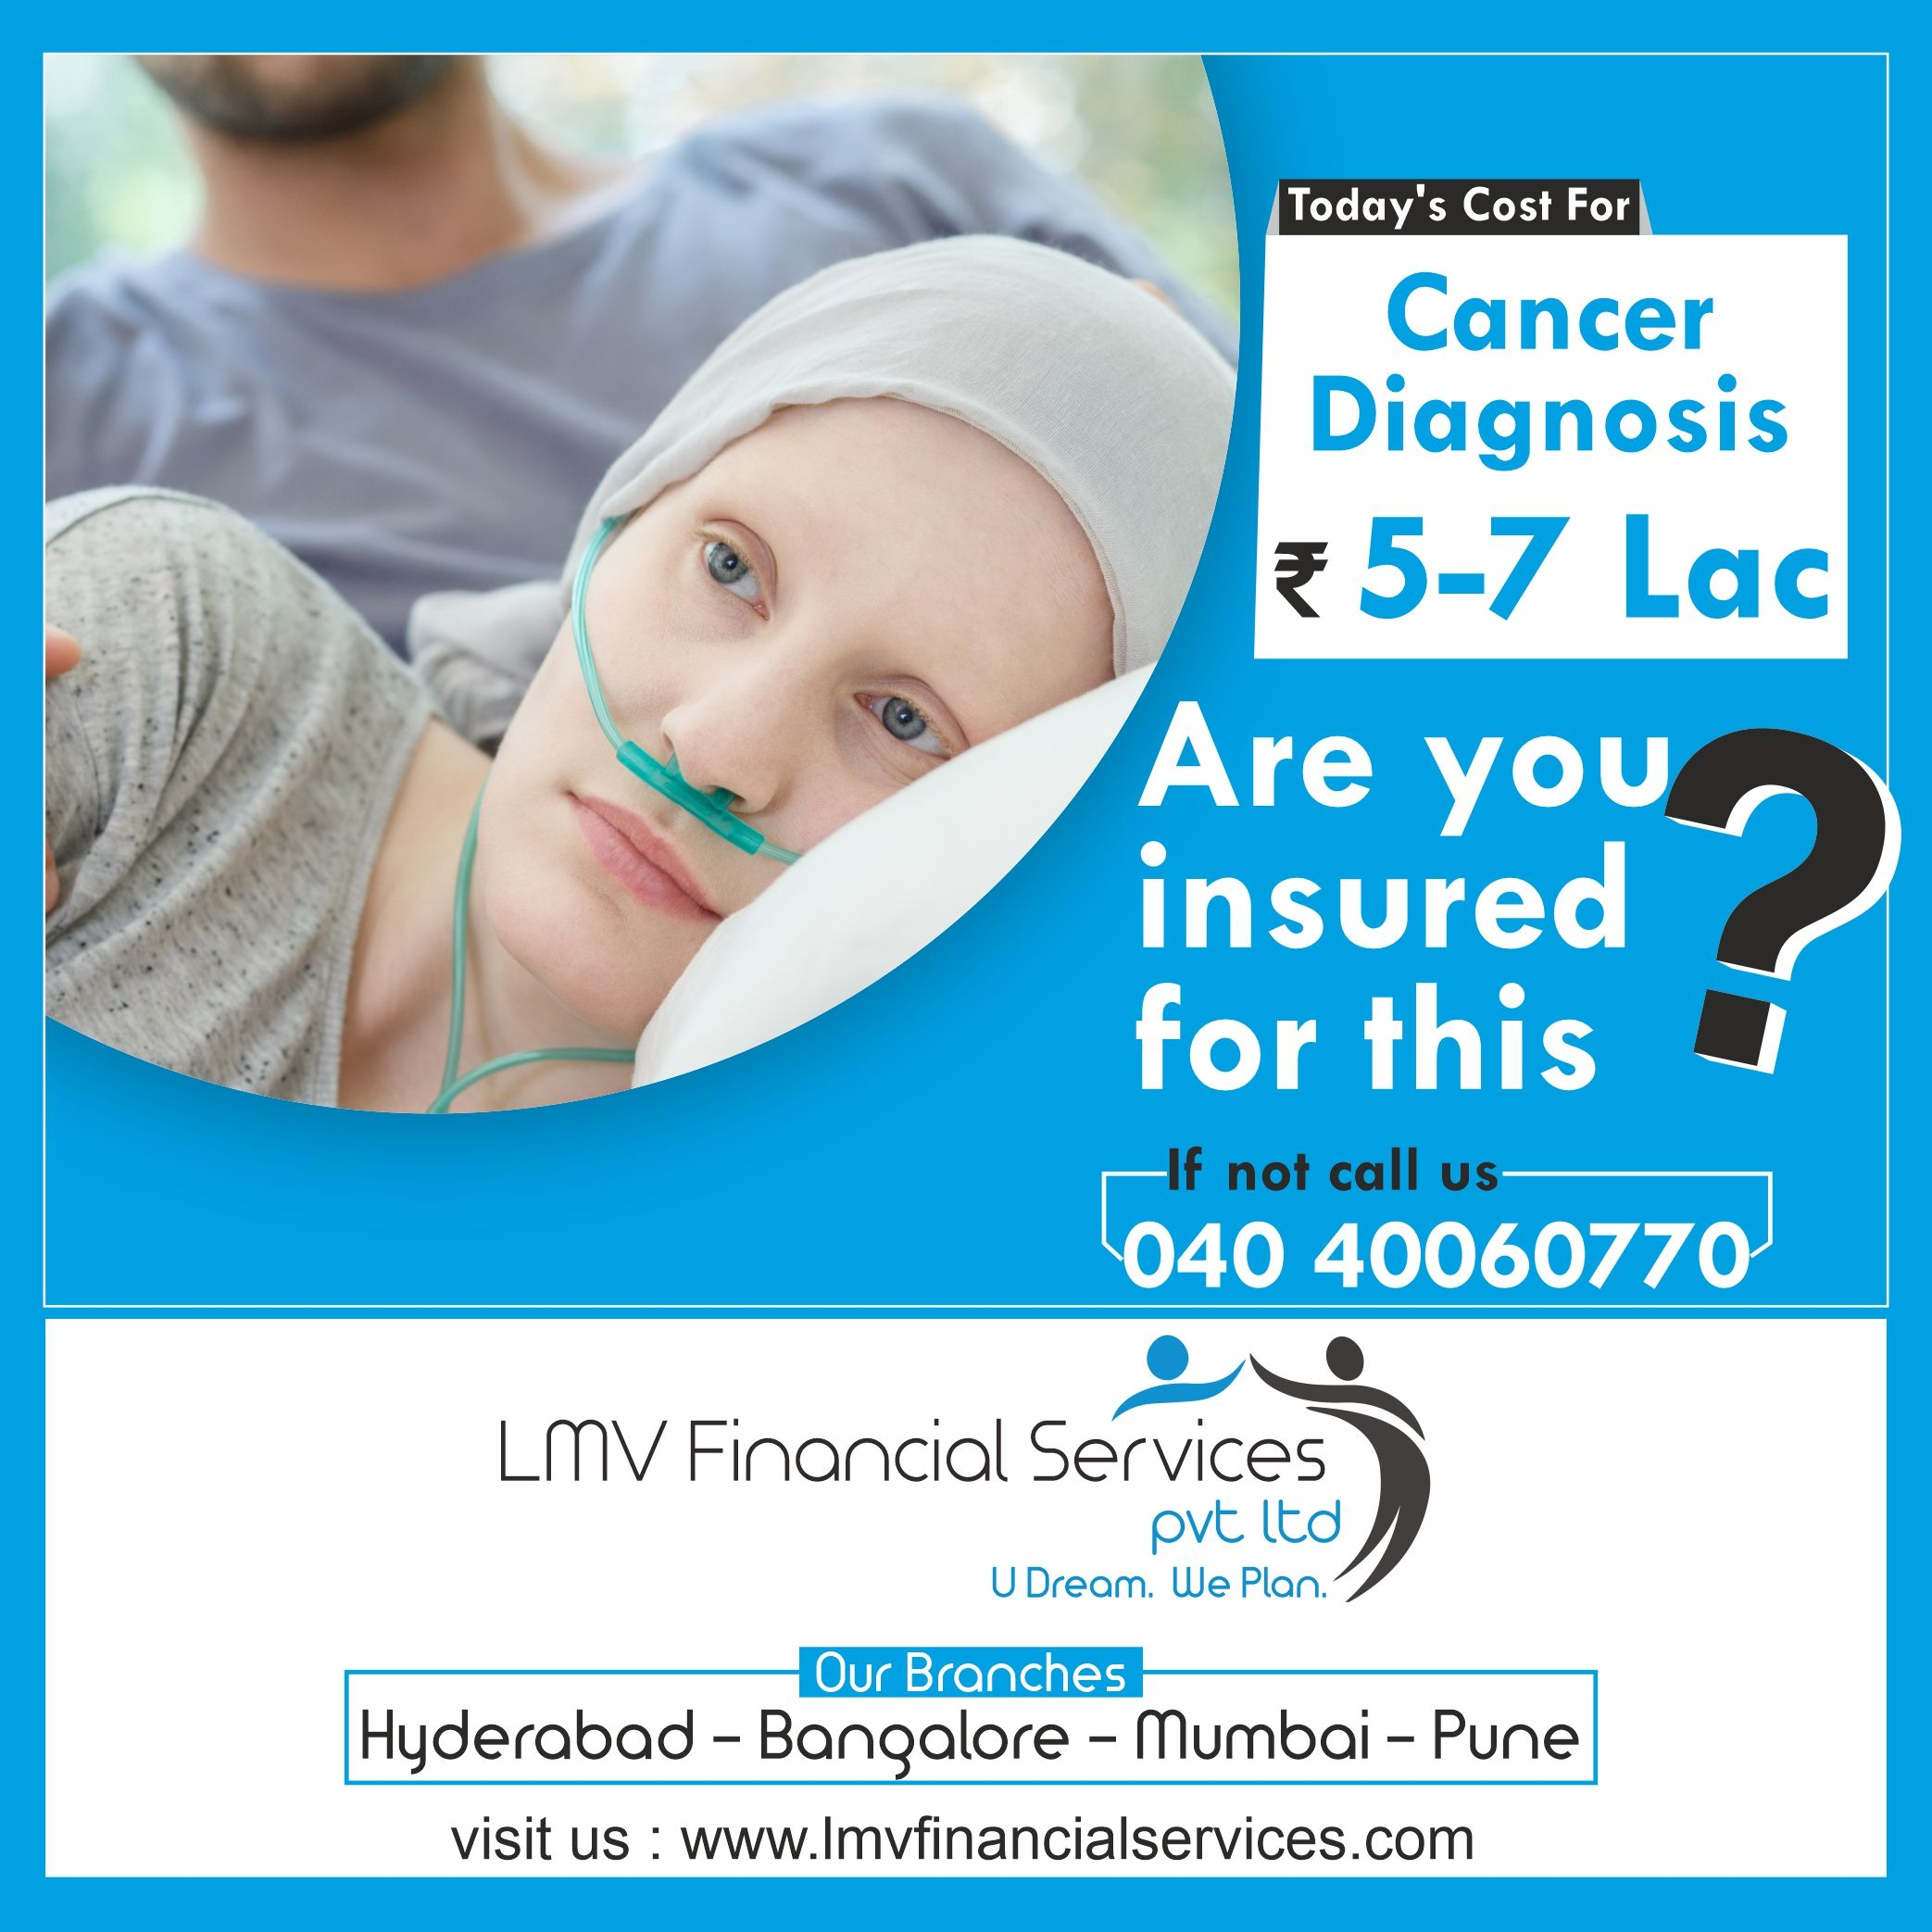 Lmv Financial Services Is One Of The Best Health Insurance Services In Hyderabad Bangalore Mumbai Pune Compare Different Health Insuran Maternity Insurance Health Insurance Companies Health Insurance